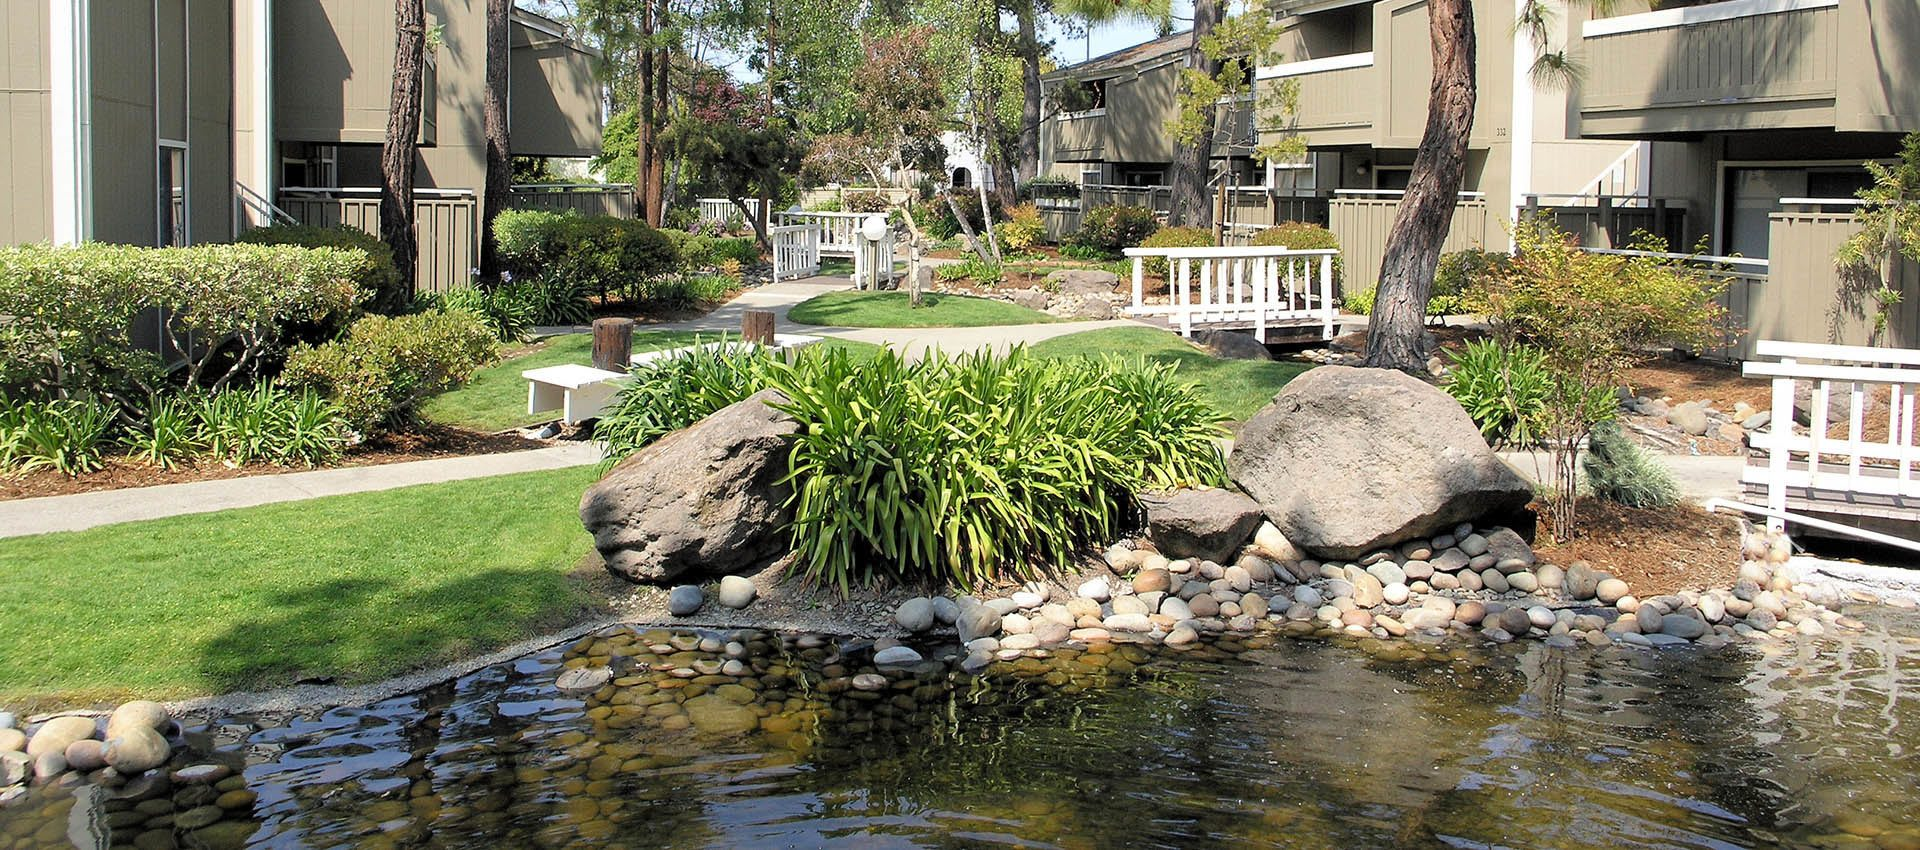 Pond at Ballena Village Apartment Homes in Alameda, CA